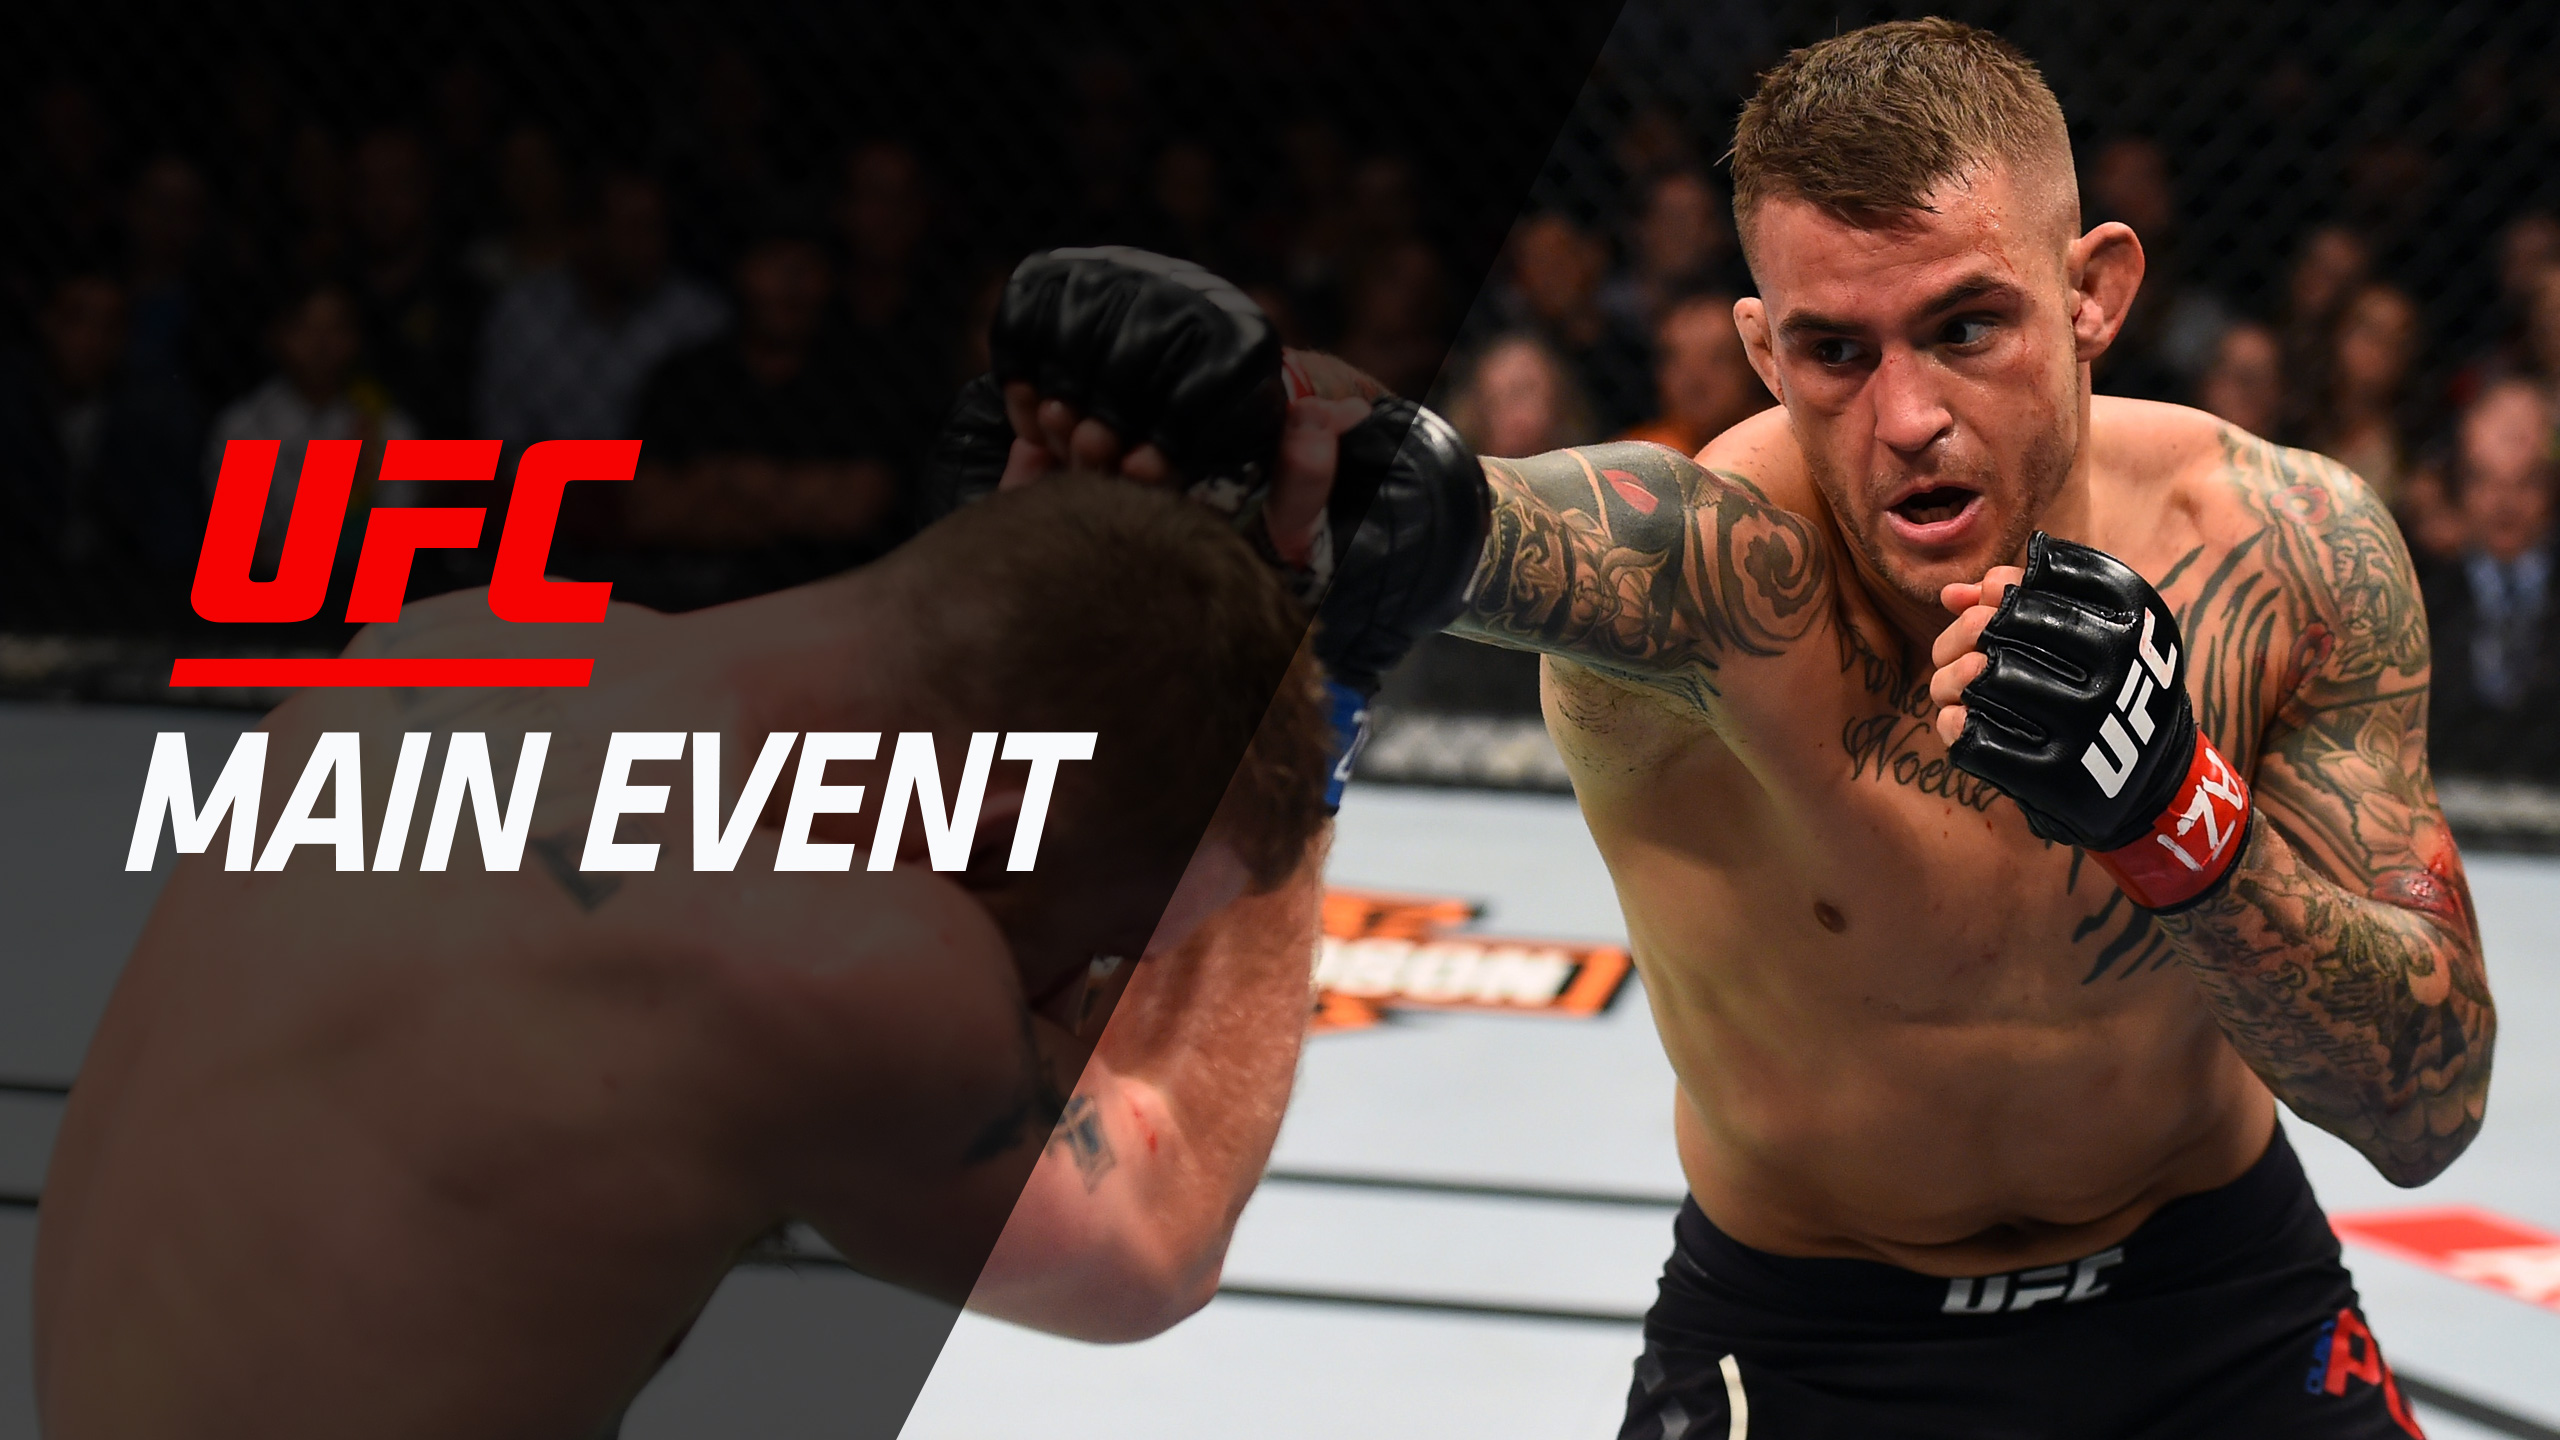 UFC Main Event: Poirier vs. Gaethje